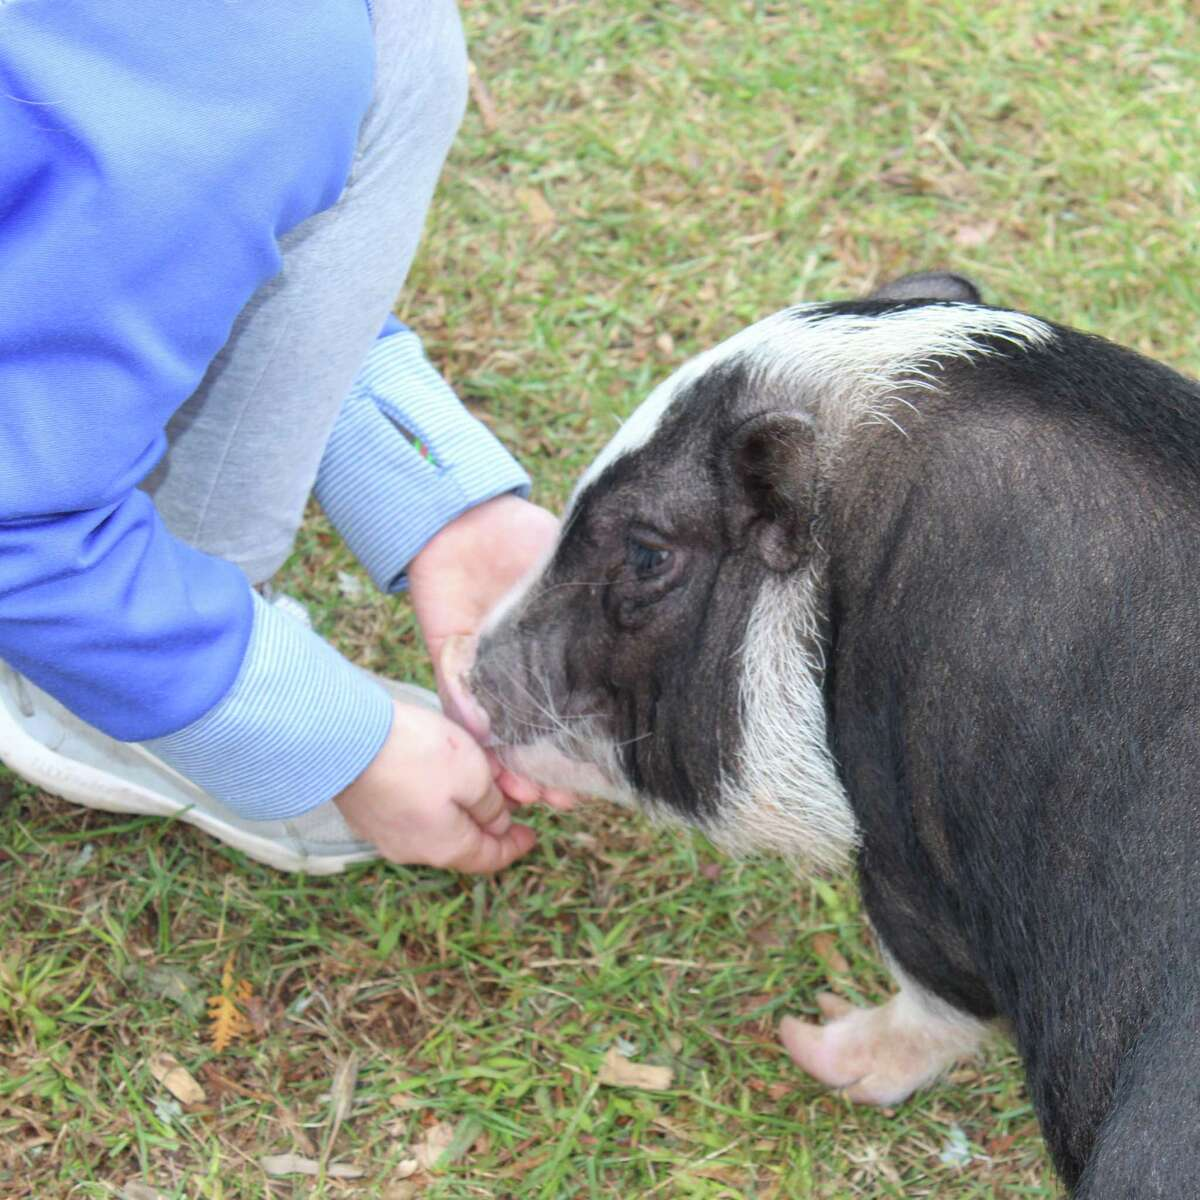 Squiggles the pig